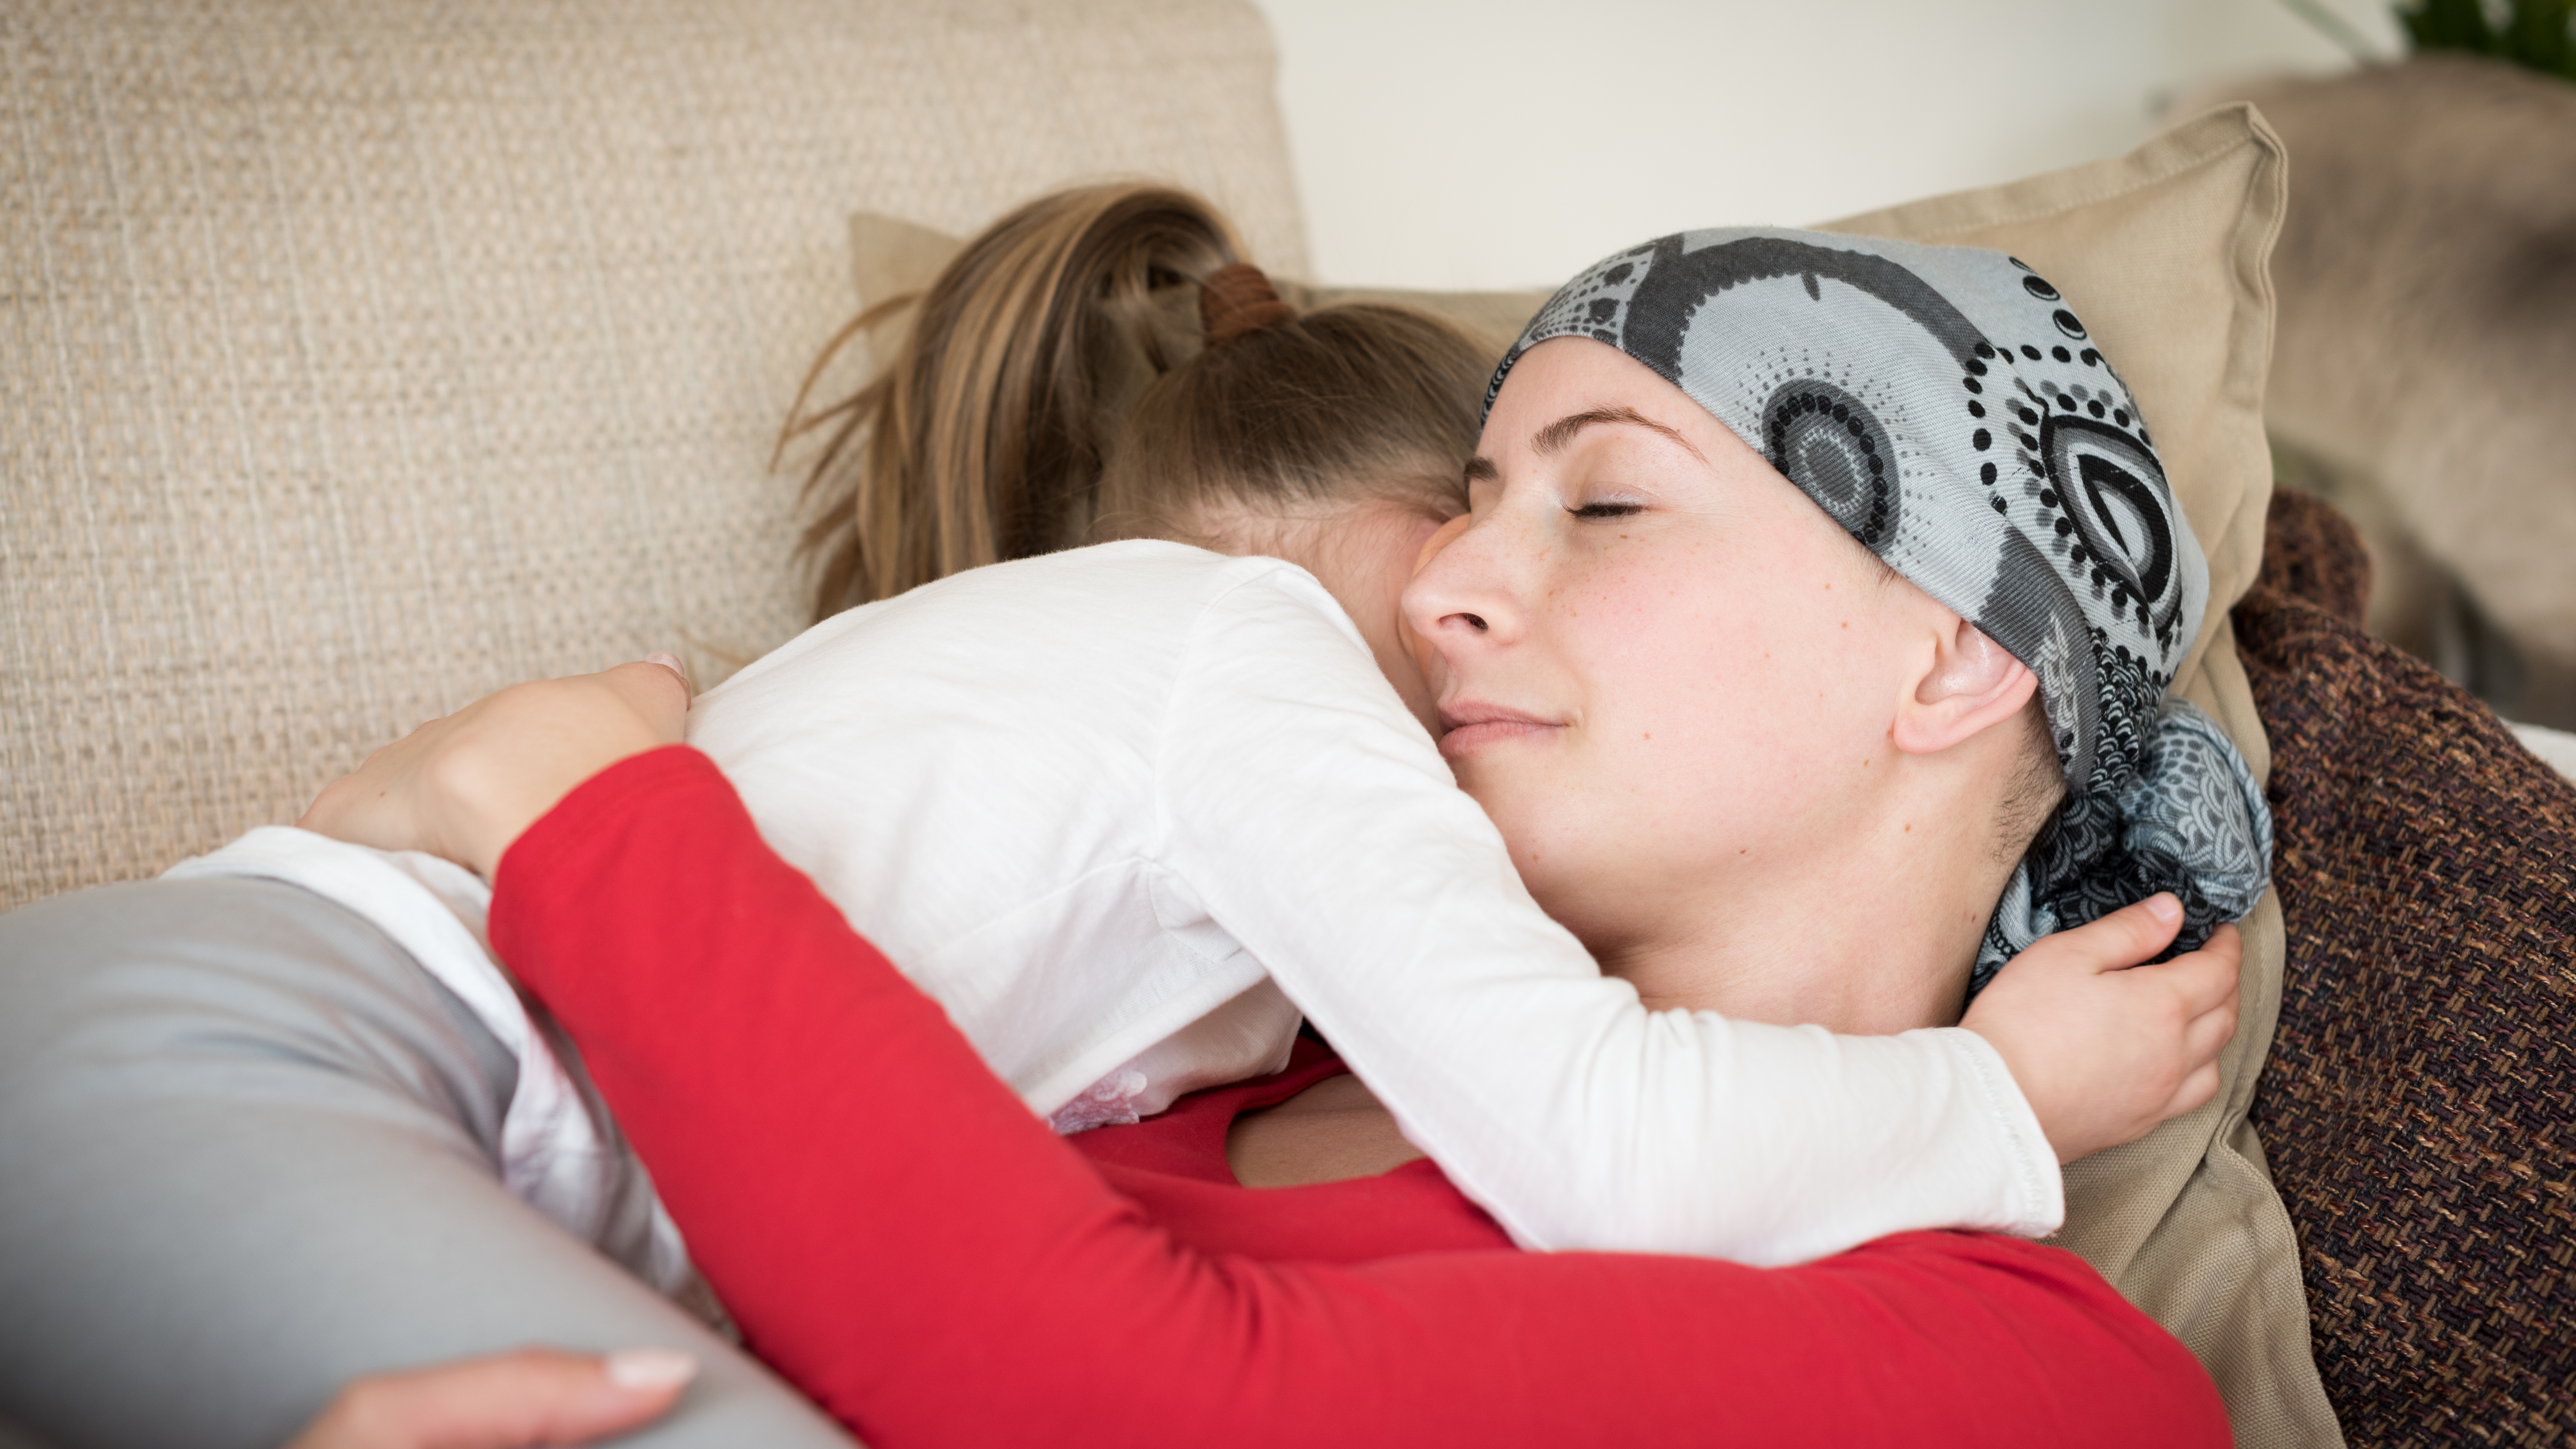 Young adult female cancer patient spending time with her daughter at home, relaxing on the couch. Cancer and family support concept.